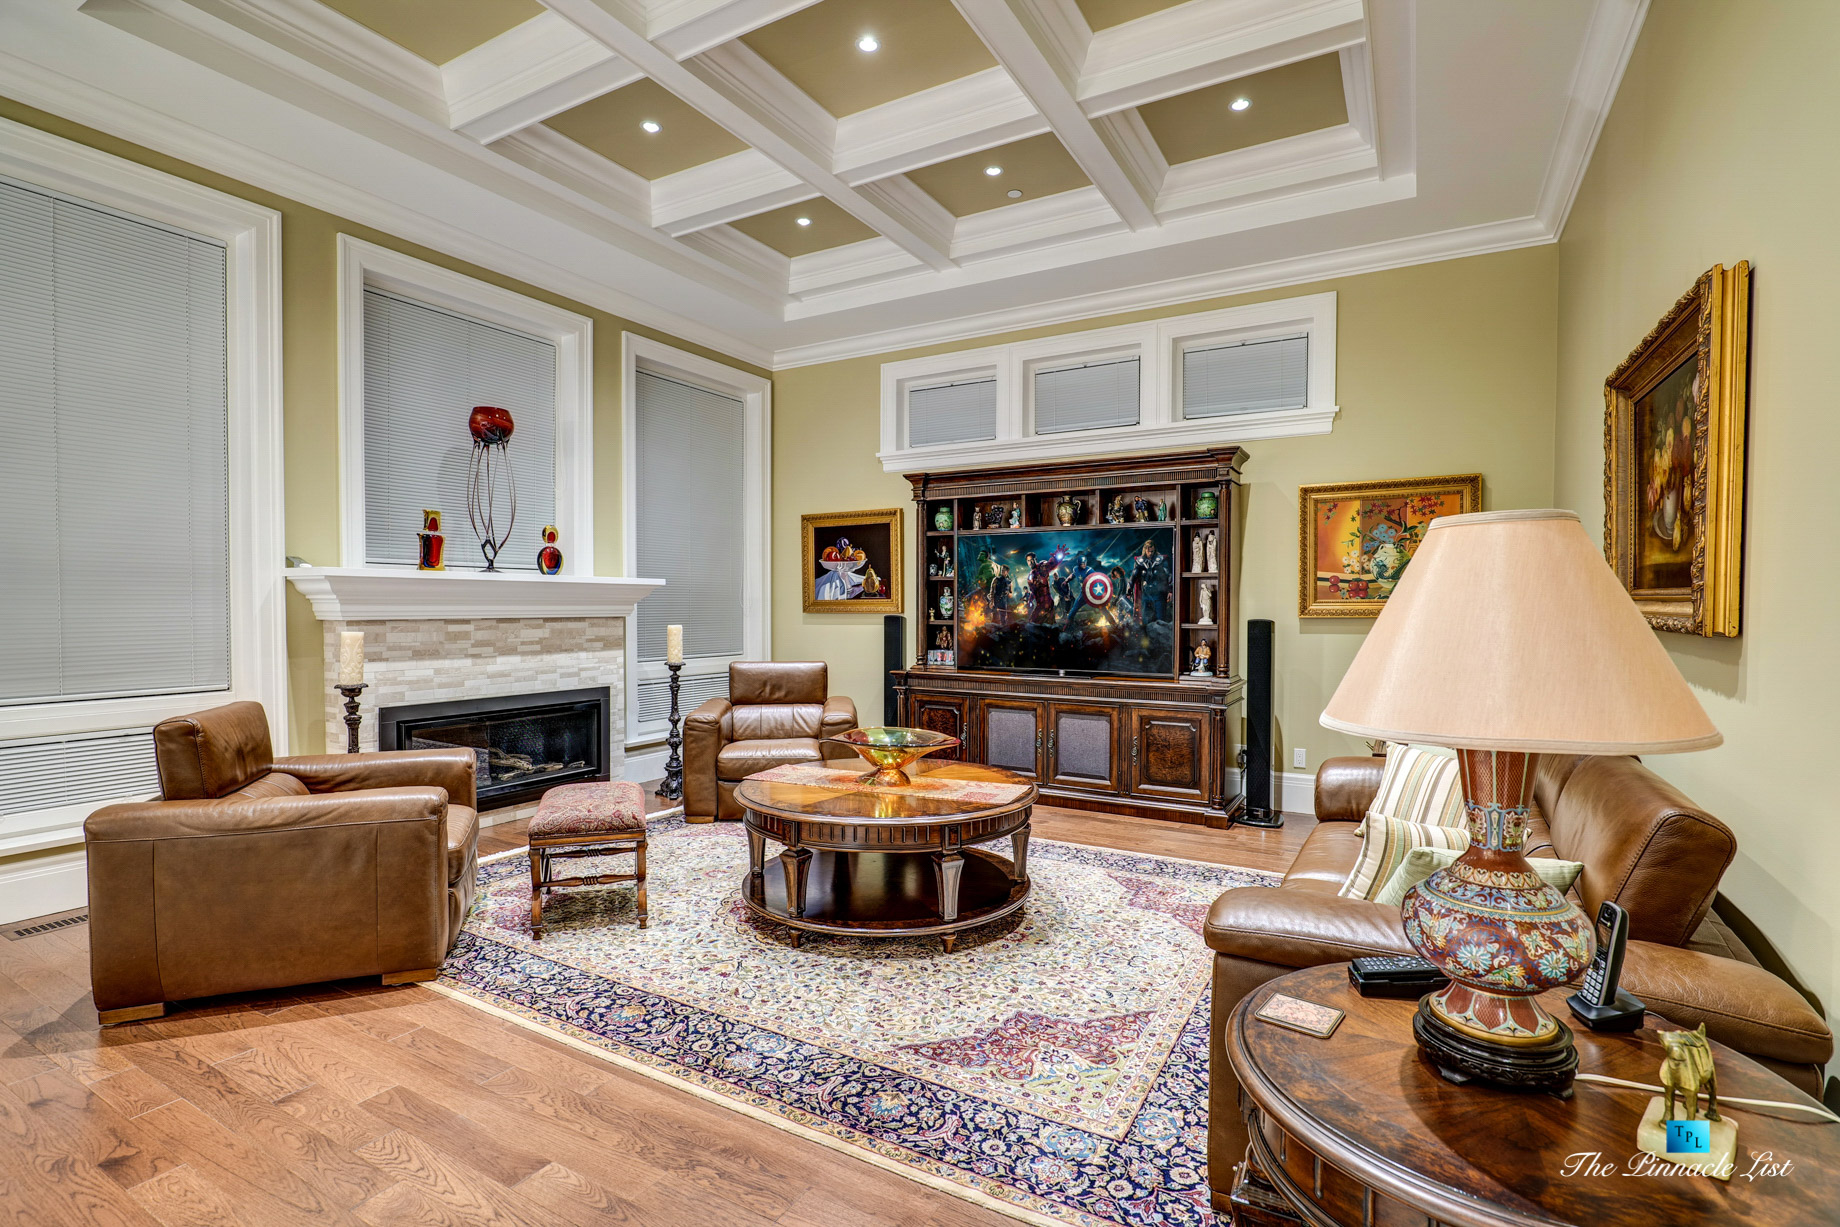 2057 Ridge Mountain Drive, Anmore, BC, Canada - Family Room - Luxury Real Estate - West Coast Greater Vancouver Home